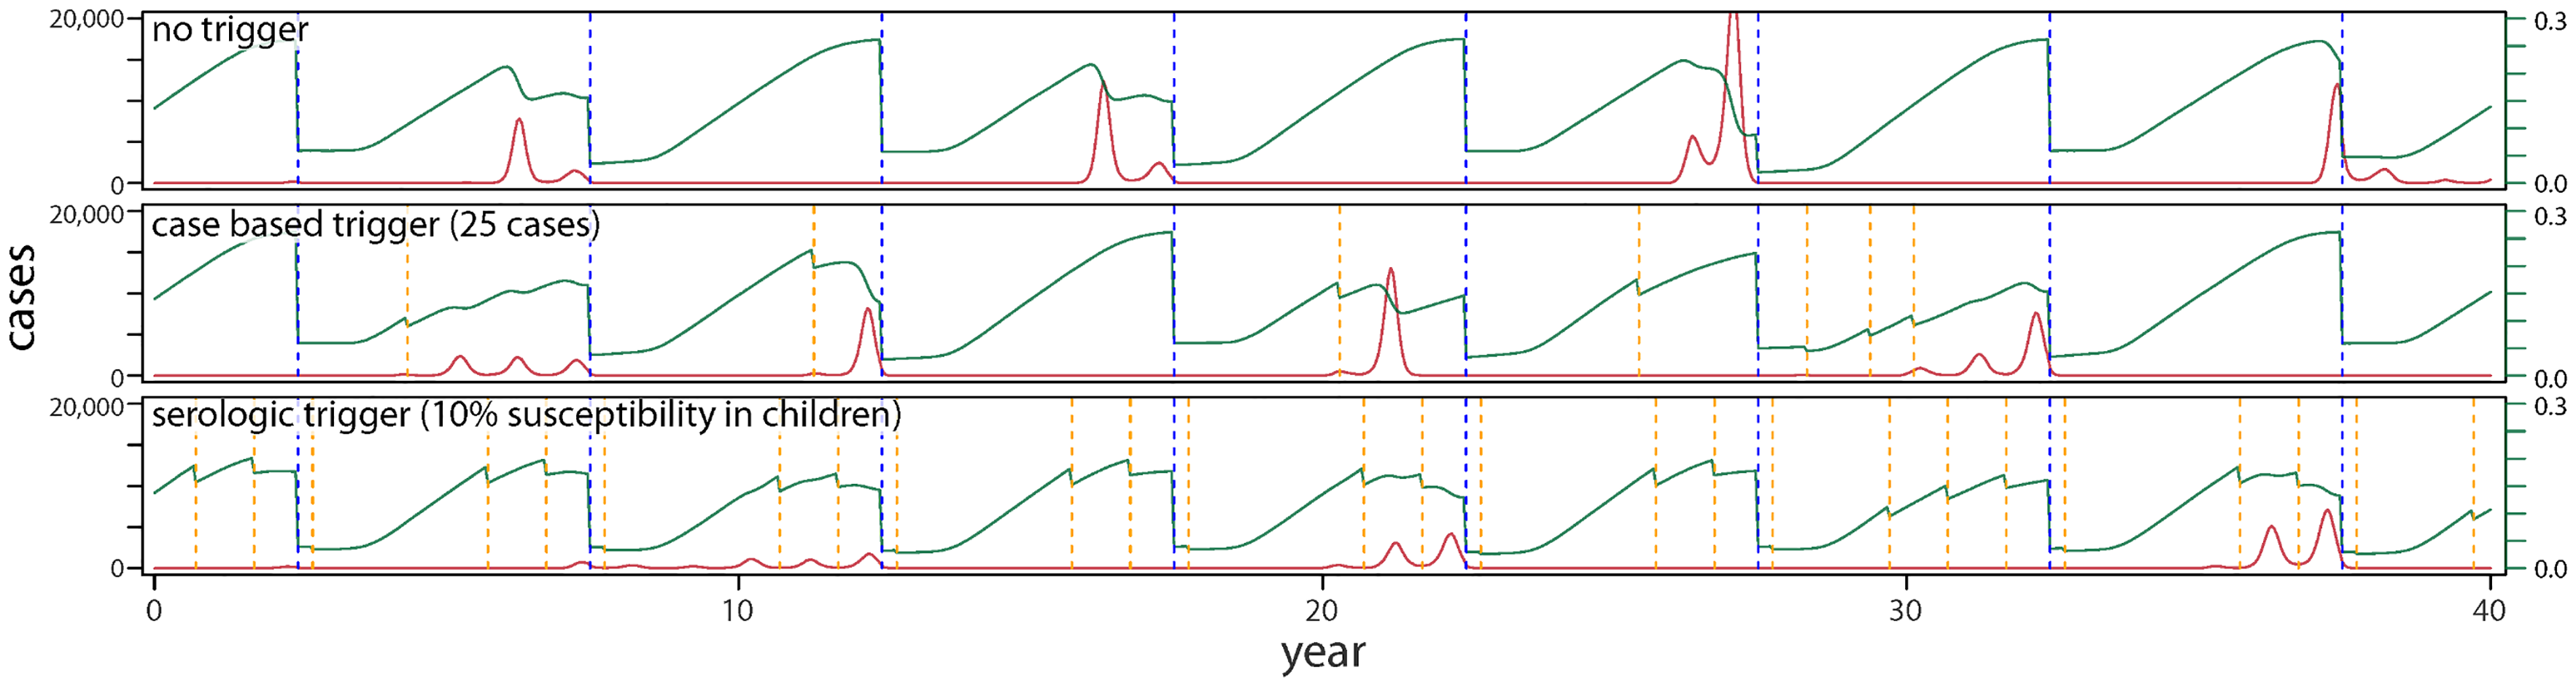 Typical time-series of incidence for three vaccination scenarios in a Yemen-like population: (i) a baseline scenario of routine vaccination combined with SIAs every 5 y; (ii) this baseline combined with campaigns that are triggered by a threshold number of cases; and (iii) this baseline combined with campaigns triggered by a threshold degree of serology in a target population age range.